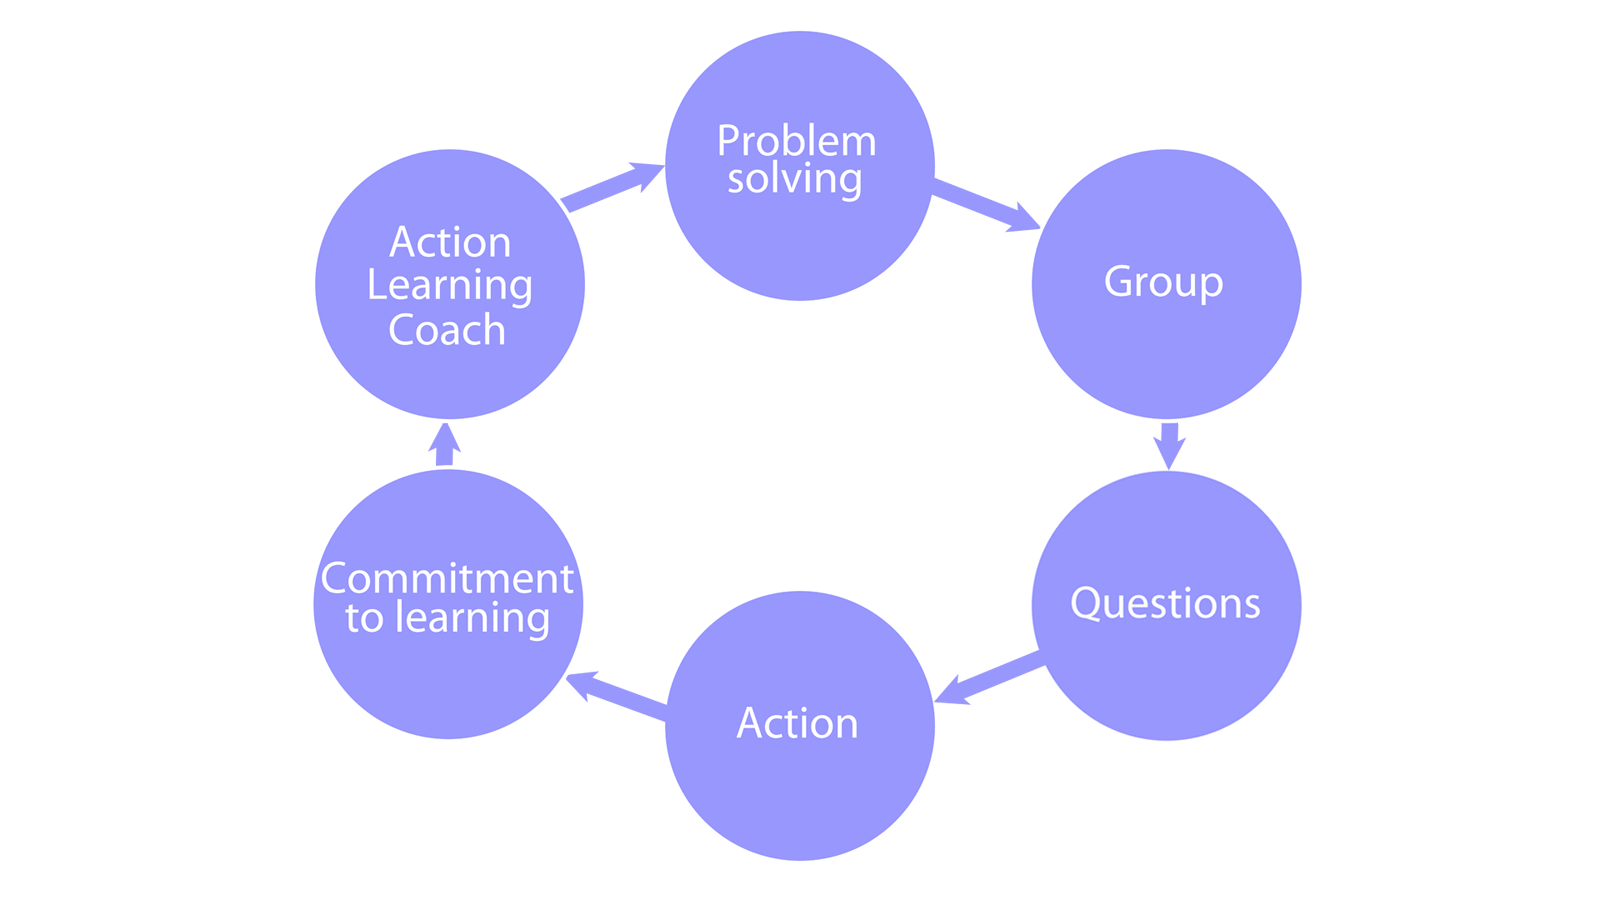 The 6 components of Action Learning, a cycle what the learning process is all about: Problem solving, Group, Questions, Action, Commitment to learning, Action Learning Coach